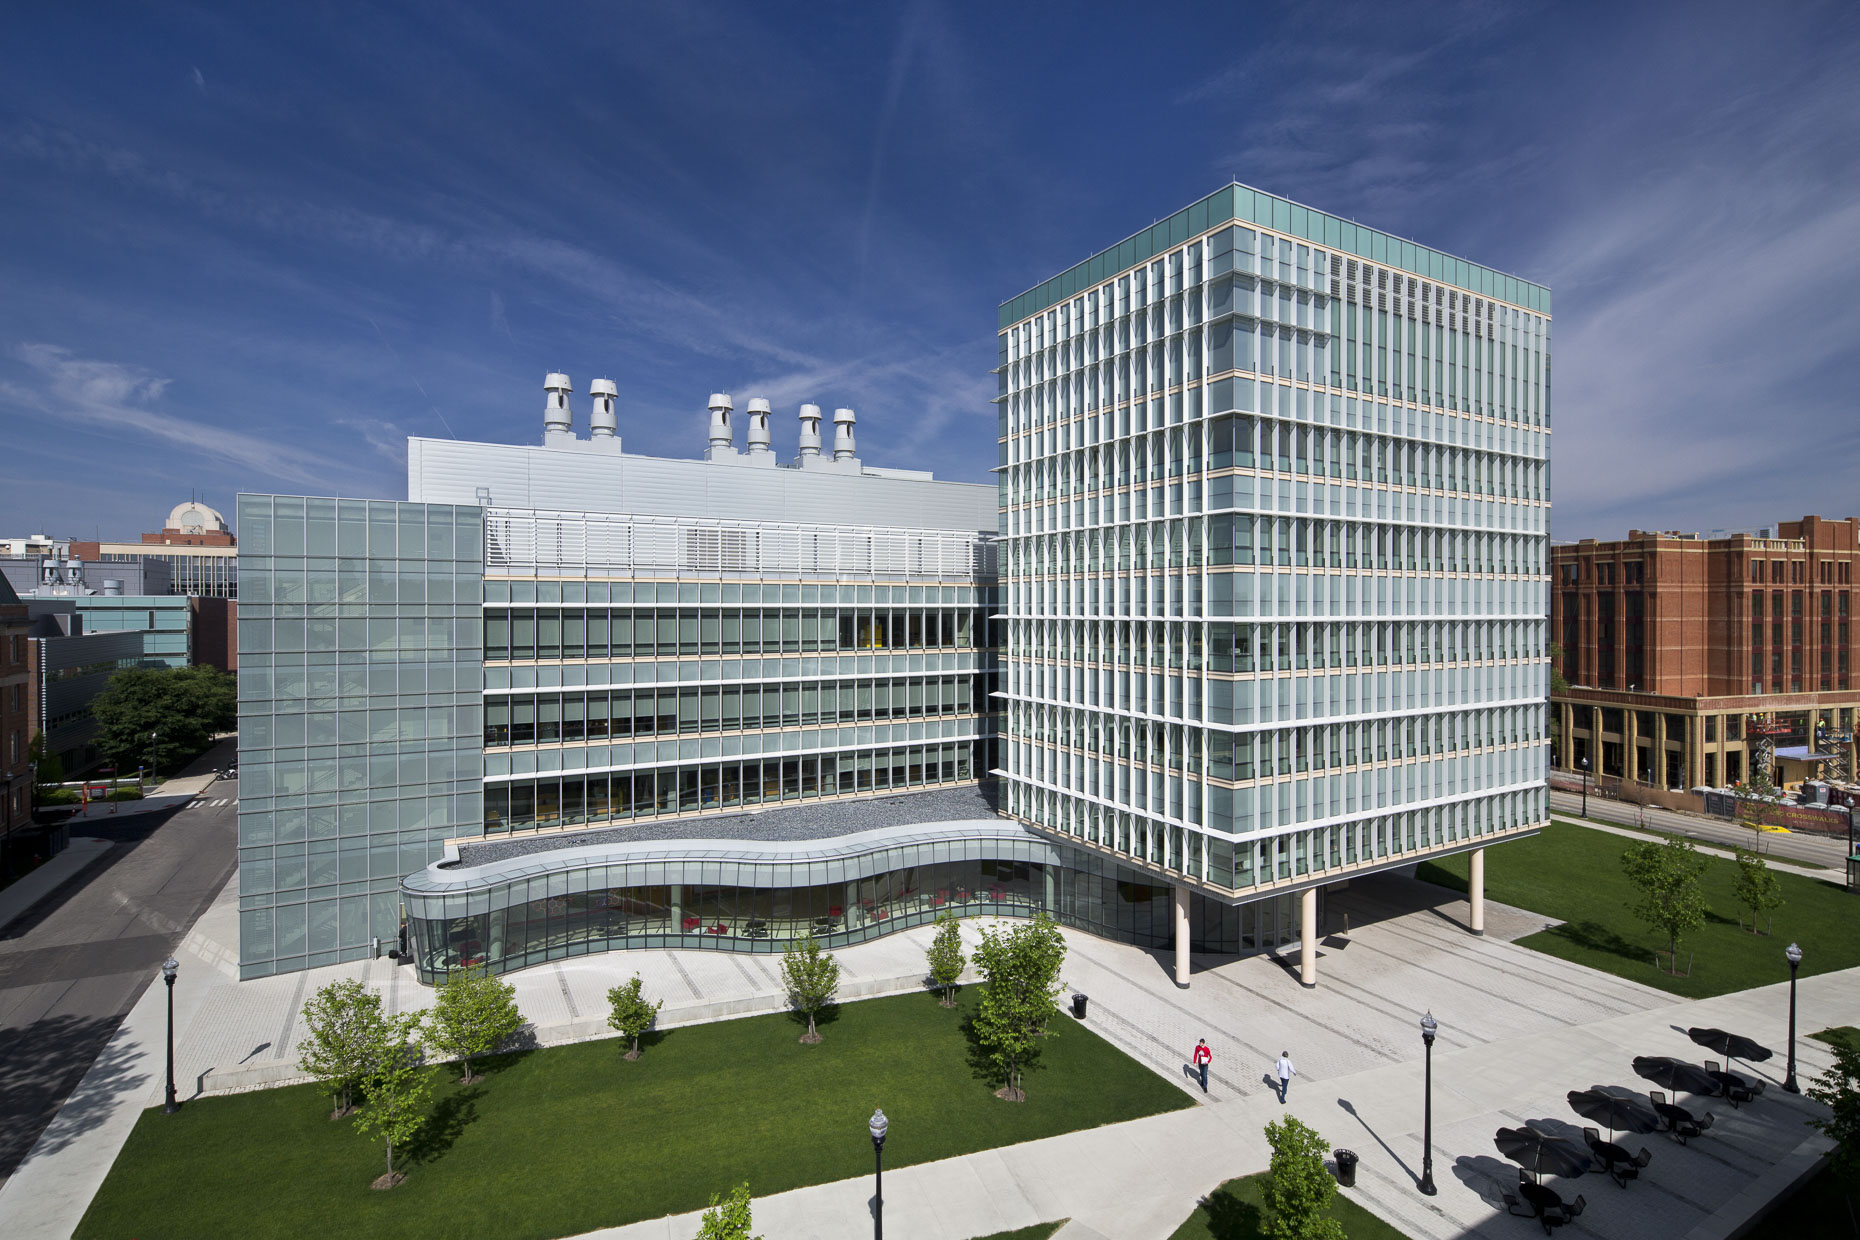 OSU CBEC Koffolt Laboratories by Pelli Clarke Pelli photographed by Brad Feinknopf based in Columbus, Ohio